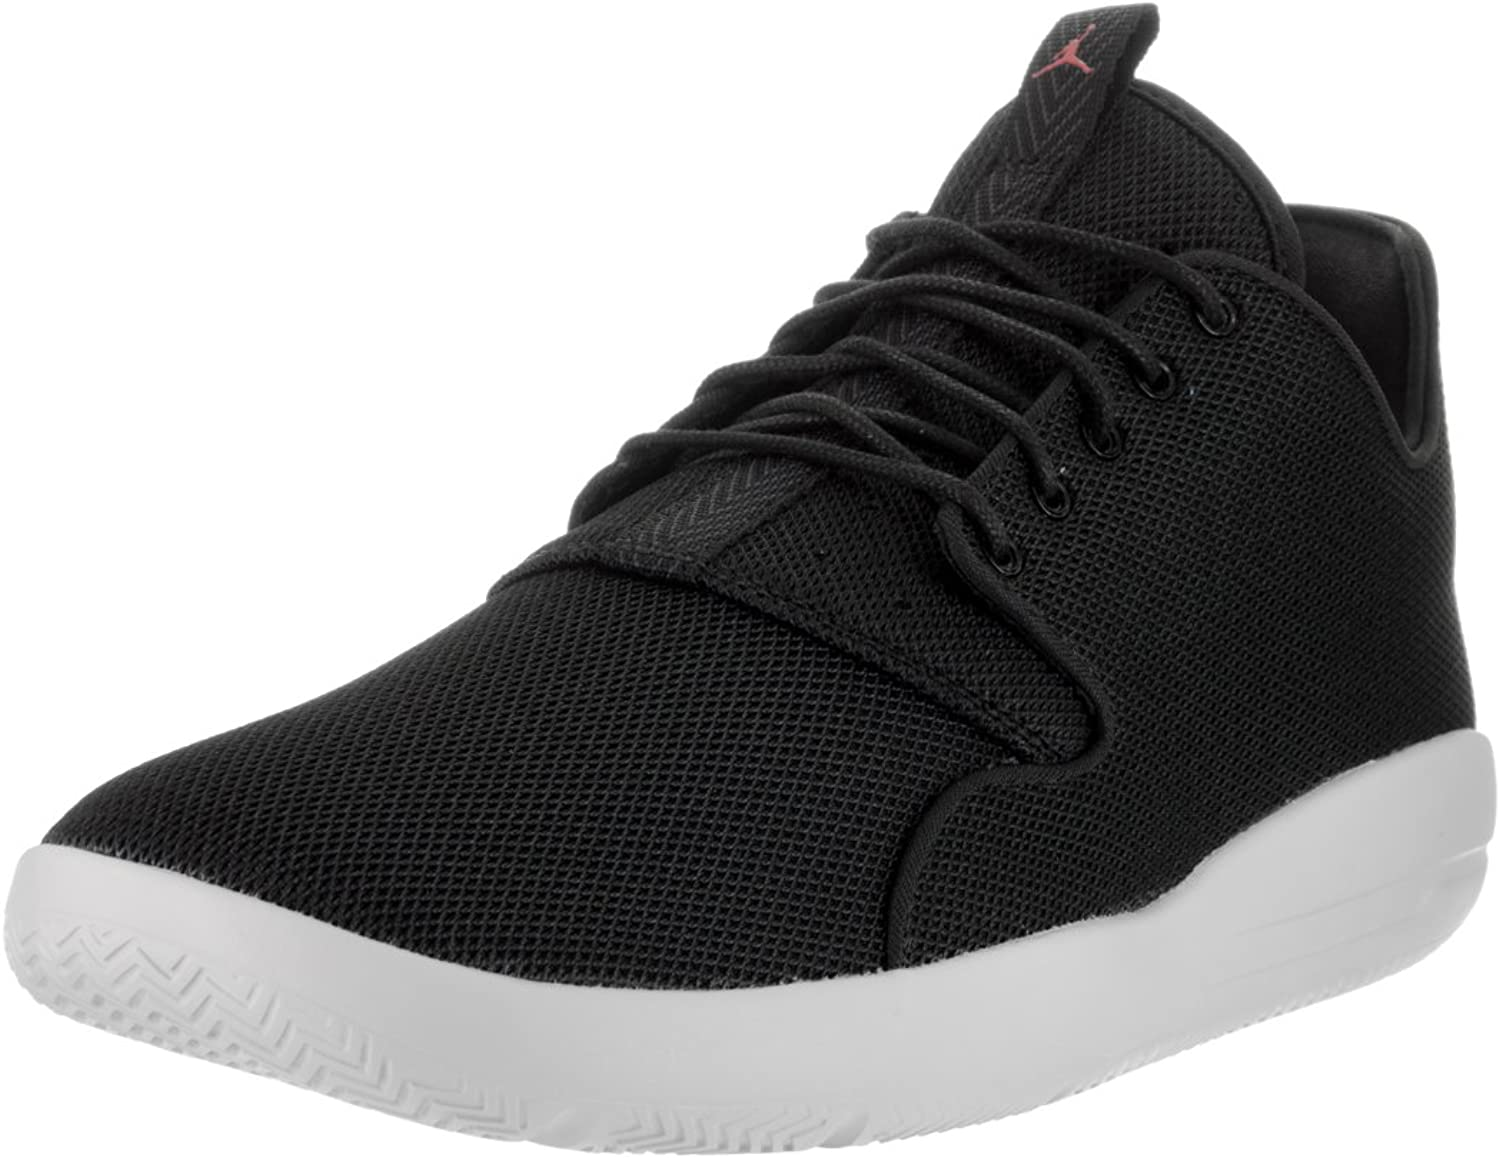 Nike Mens Jordan Eclipse Running shoes Black Gym Red Pure Platinum 10